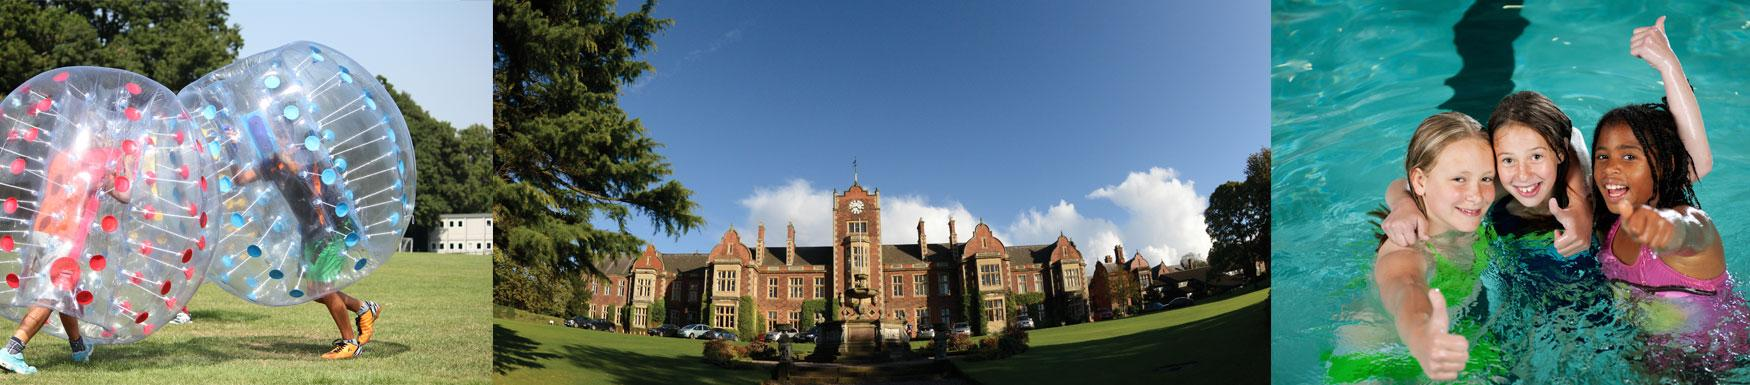 The Royal School, Wolverhampton